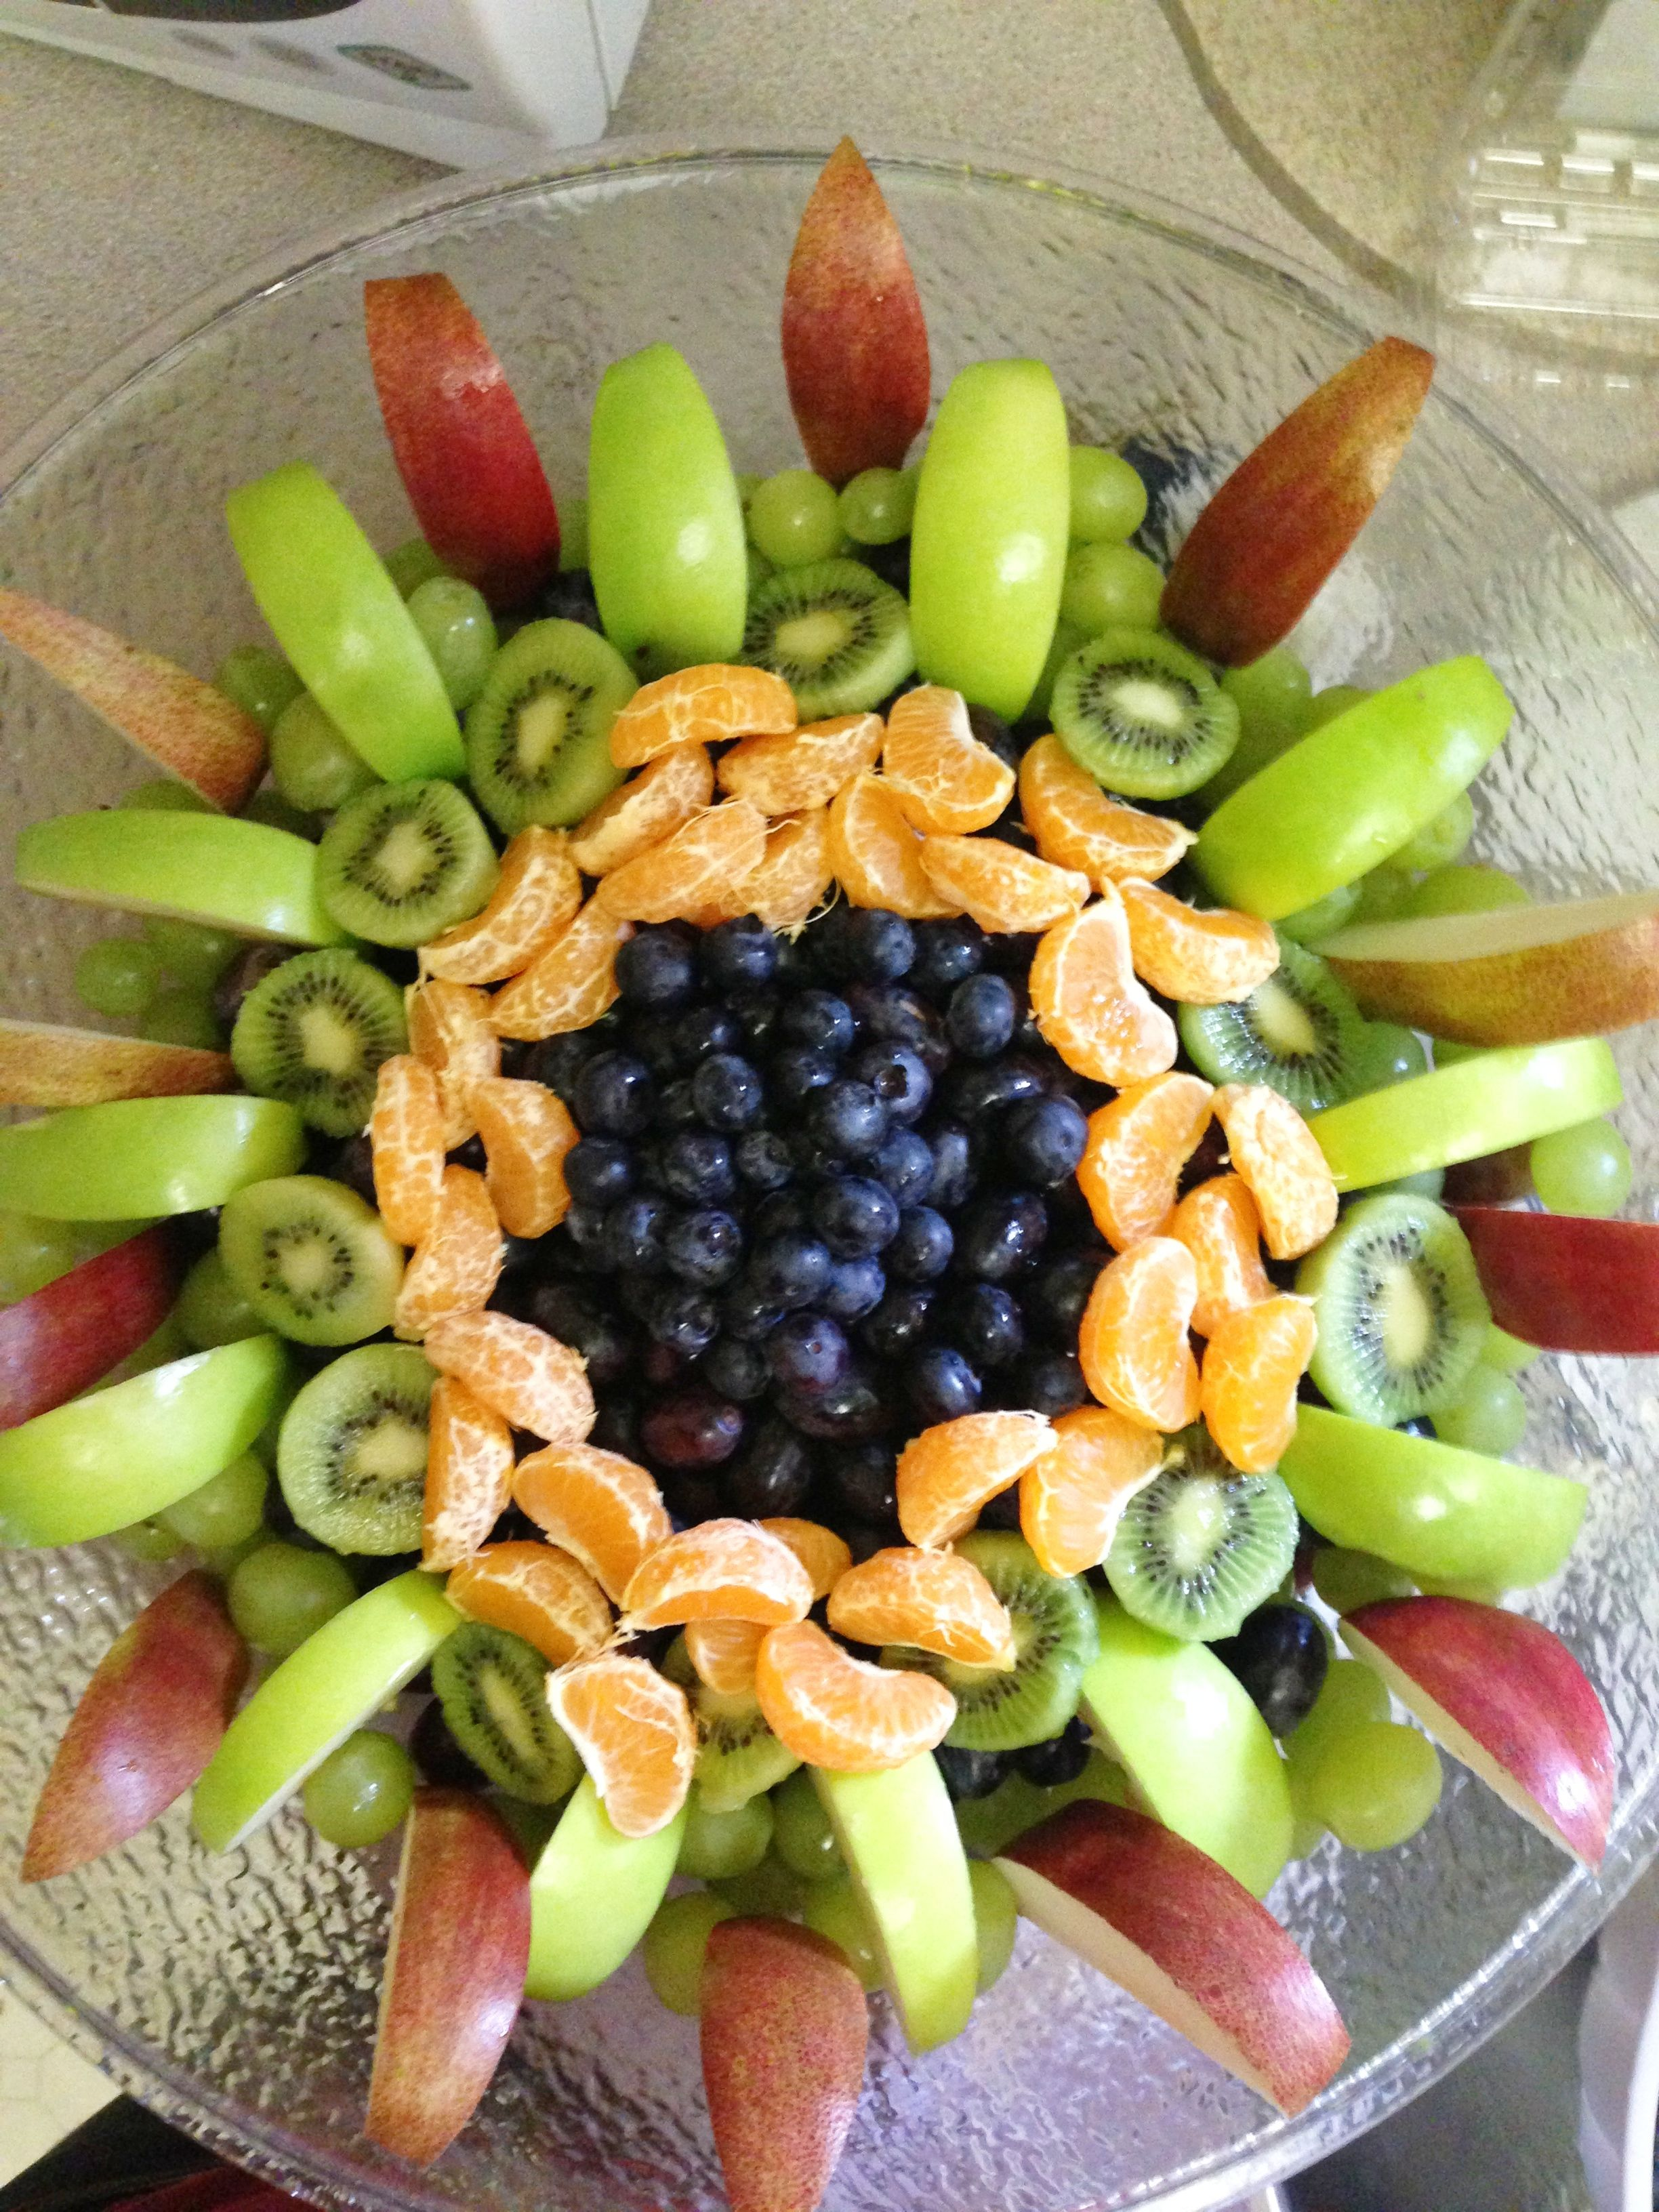 Decorative Fruit Salad Started With Grapes Boarded It With Green